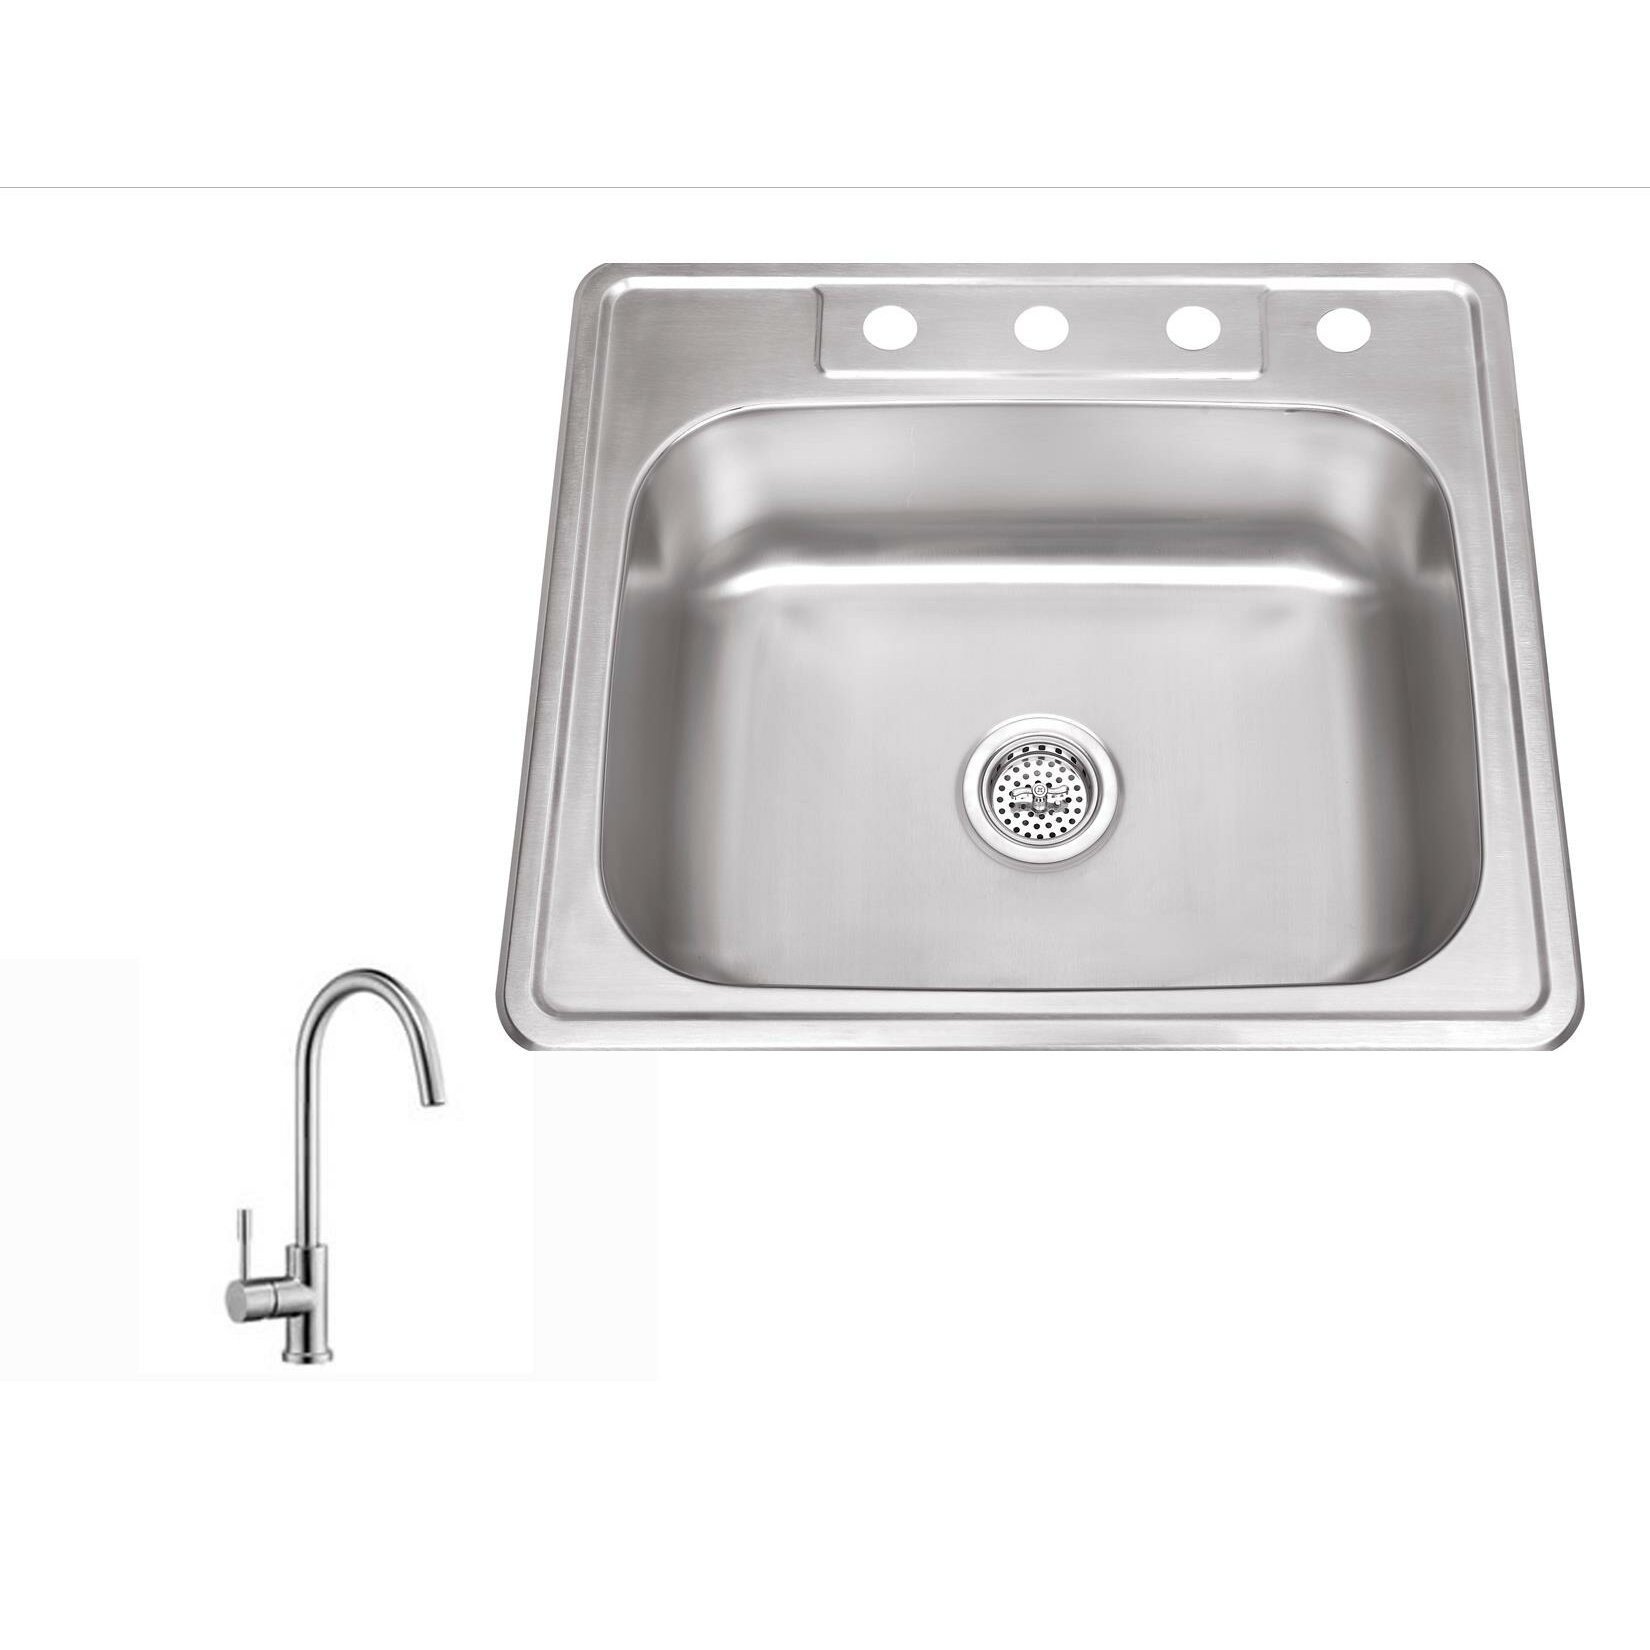 single bowl kitchen sink drop in soleil 25 quot x 22 quot stainless steel drop in single bowl 9304